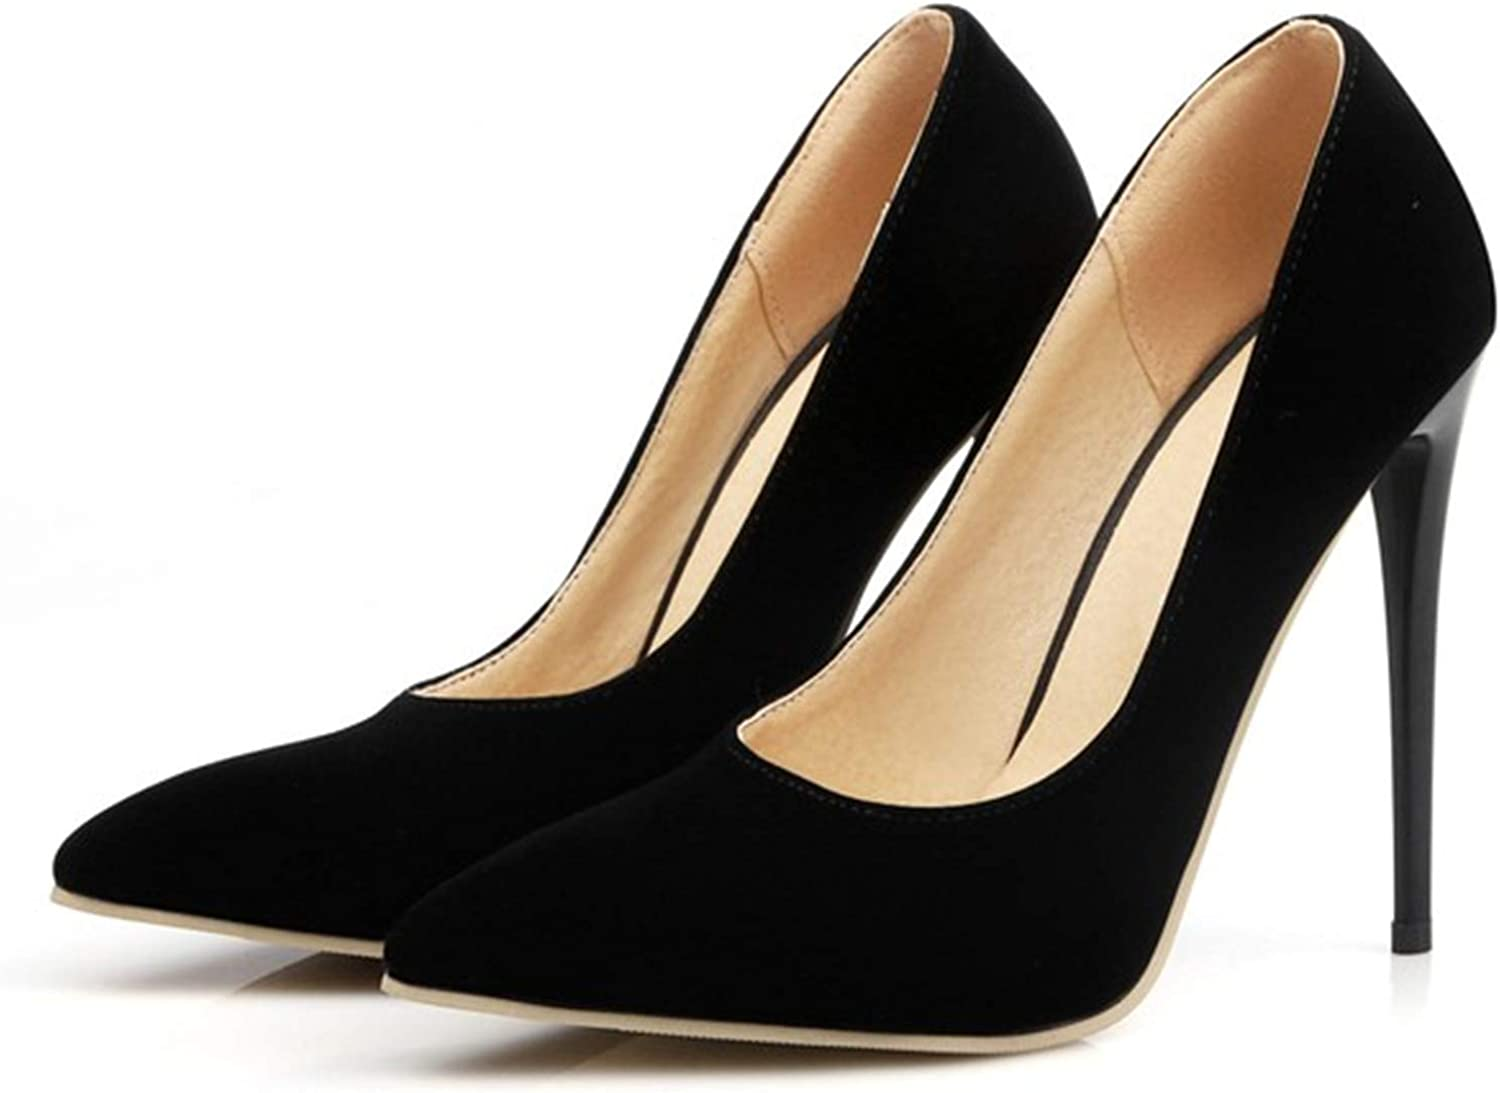 Micca Bacain Apricot Sexy Pointed Toe Women Pumps Platform Pumps High Heels Ladies Wedding Party shoes